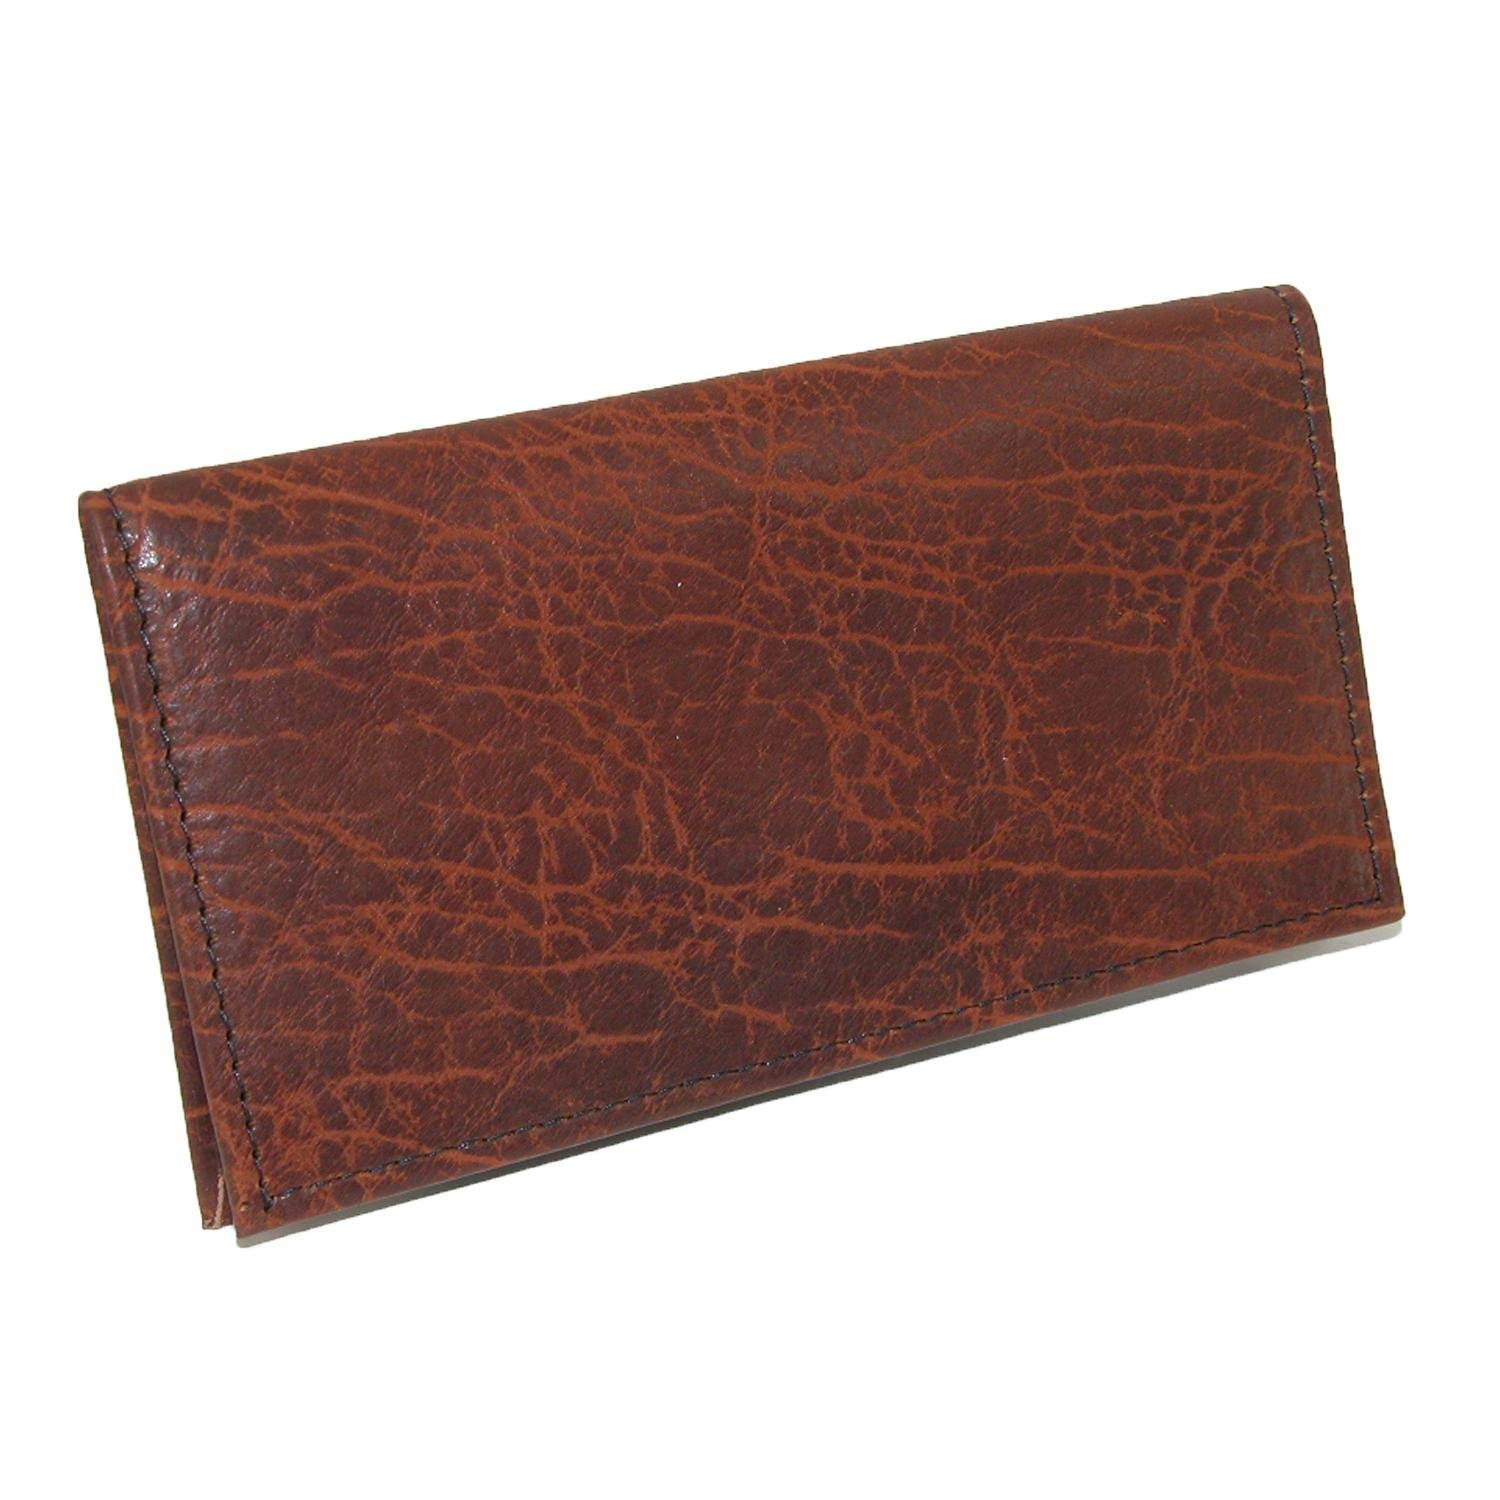 Boston Leather Unisex Textured Bison Leather Checkbook Cover, Tuscan by Boston Leather